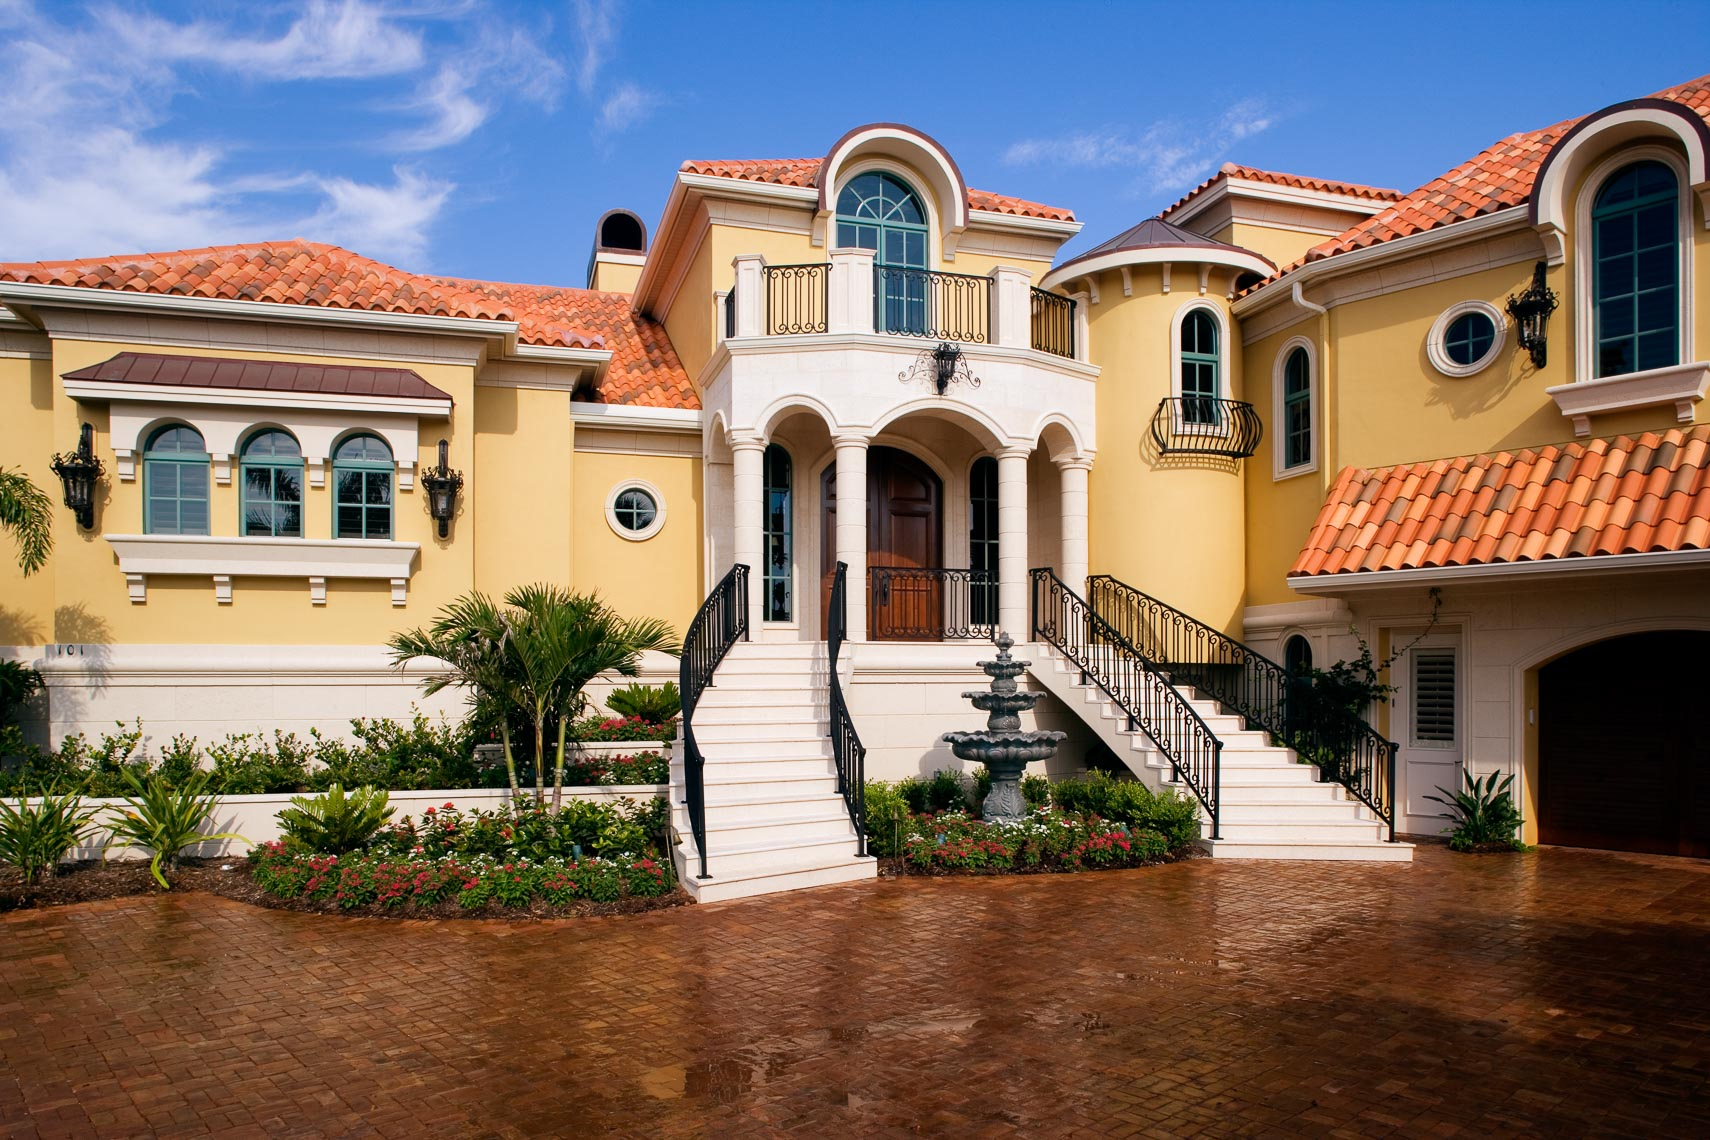 Costal Mediterranean Home - Mark Borosch Photography - Bird Key, FL